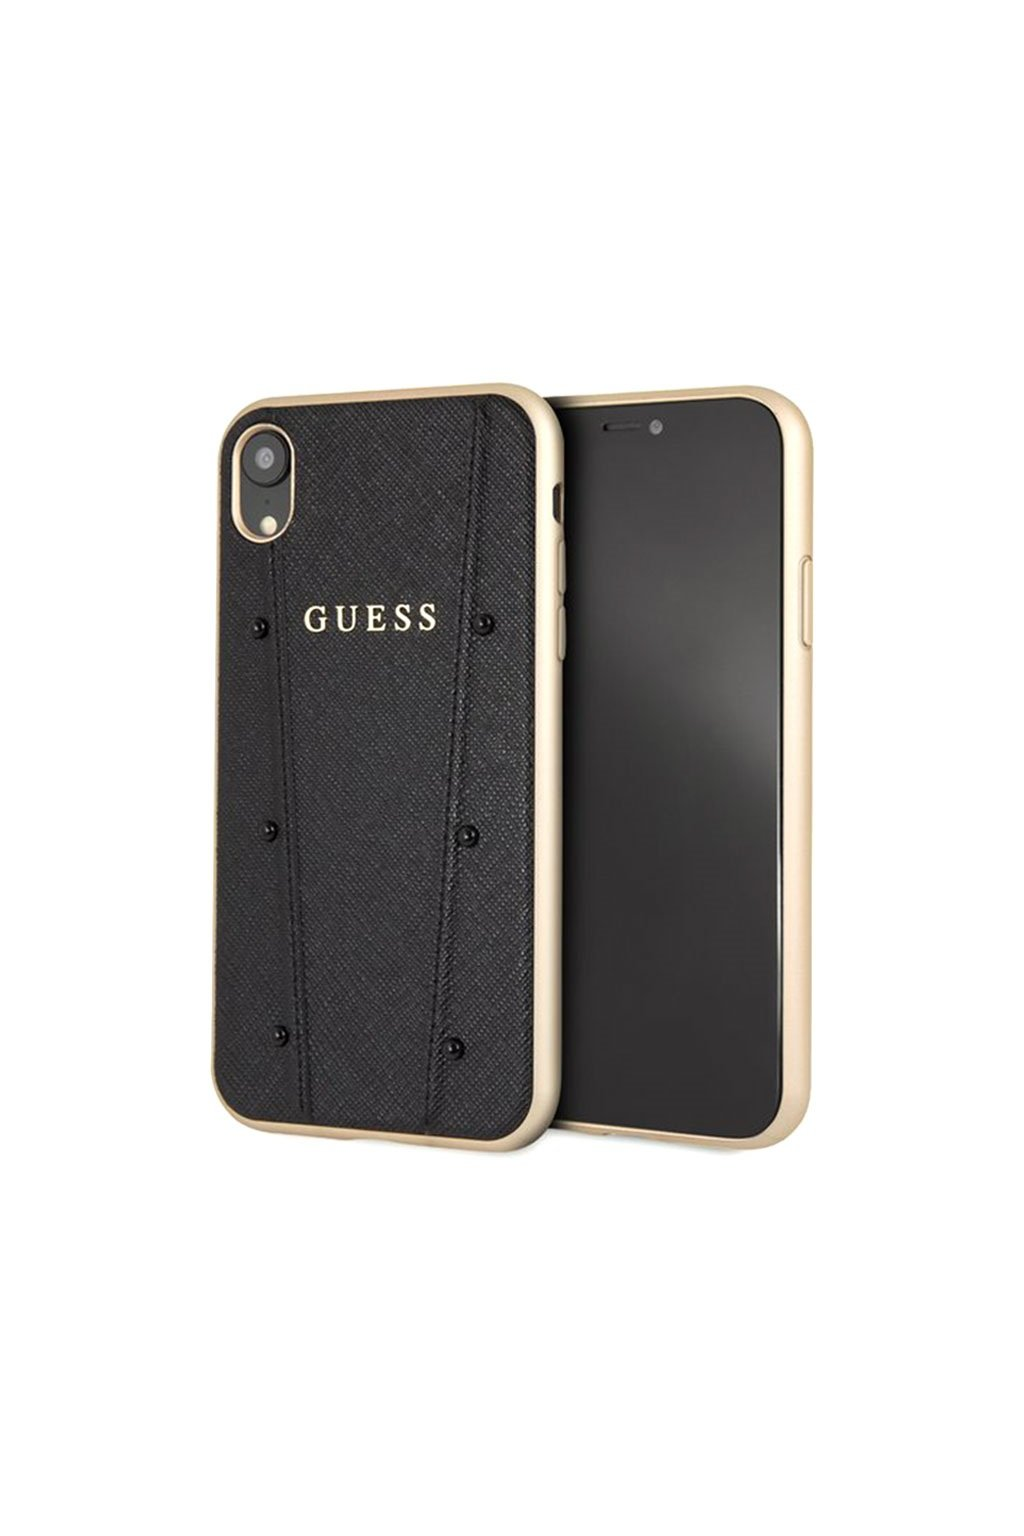 Guess Kaia Designer Case for iPhone XR Black Gold 3700740437117 20102018 01 p